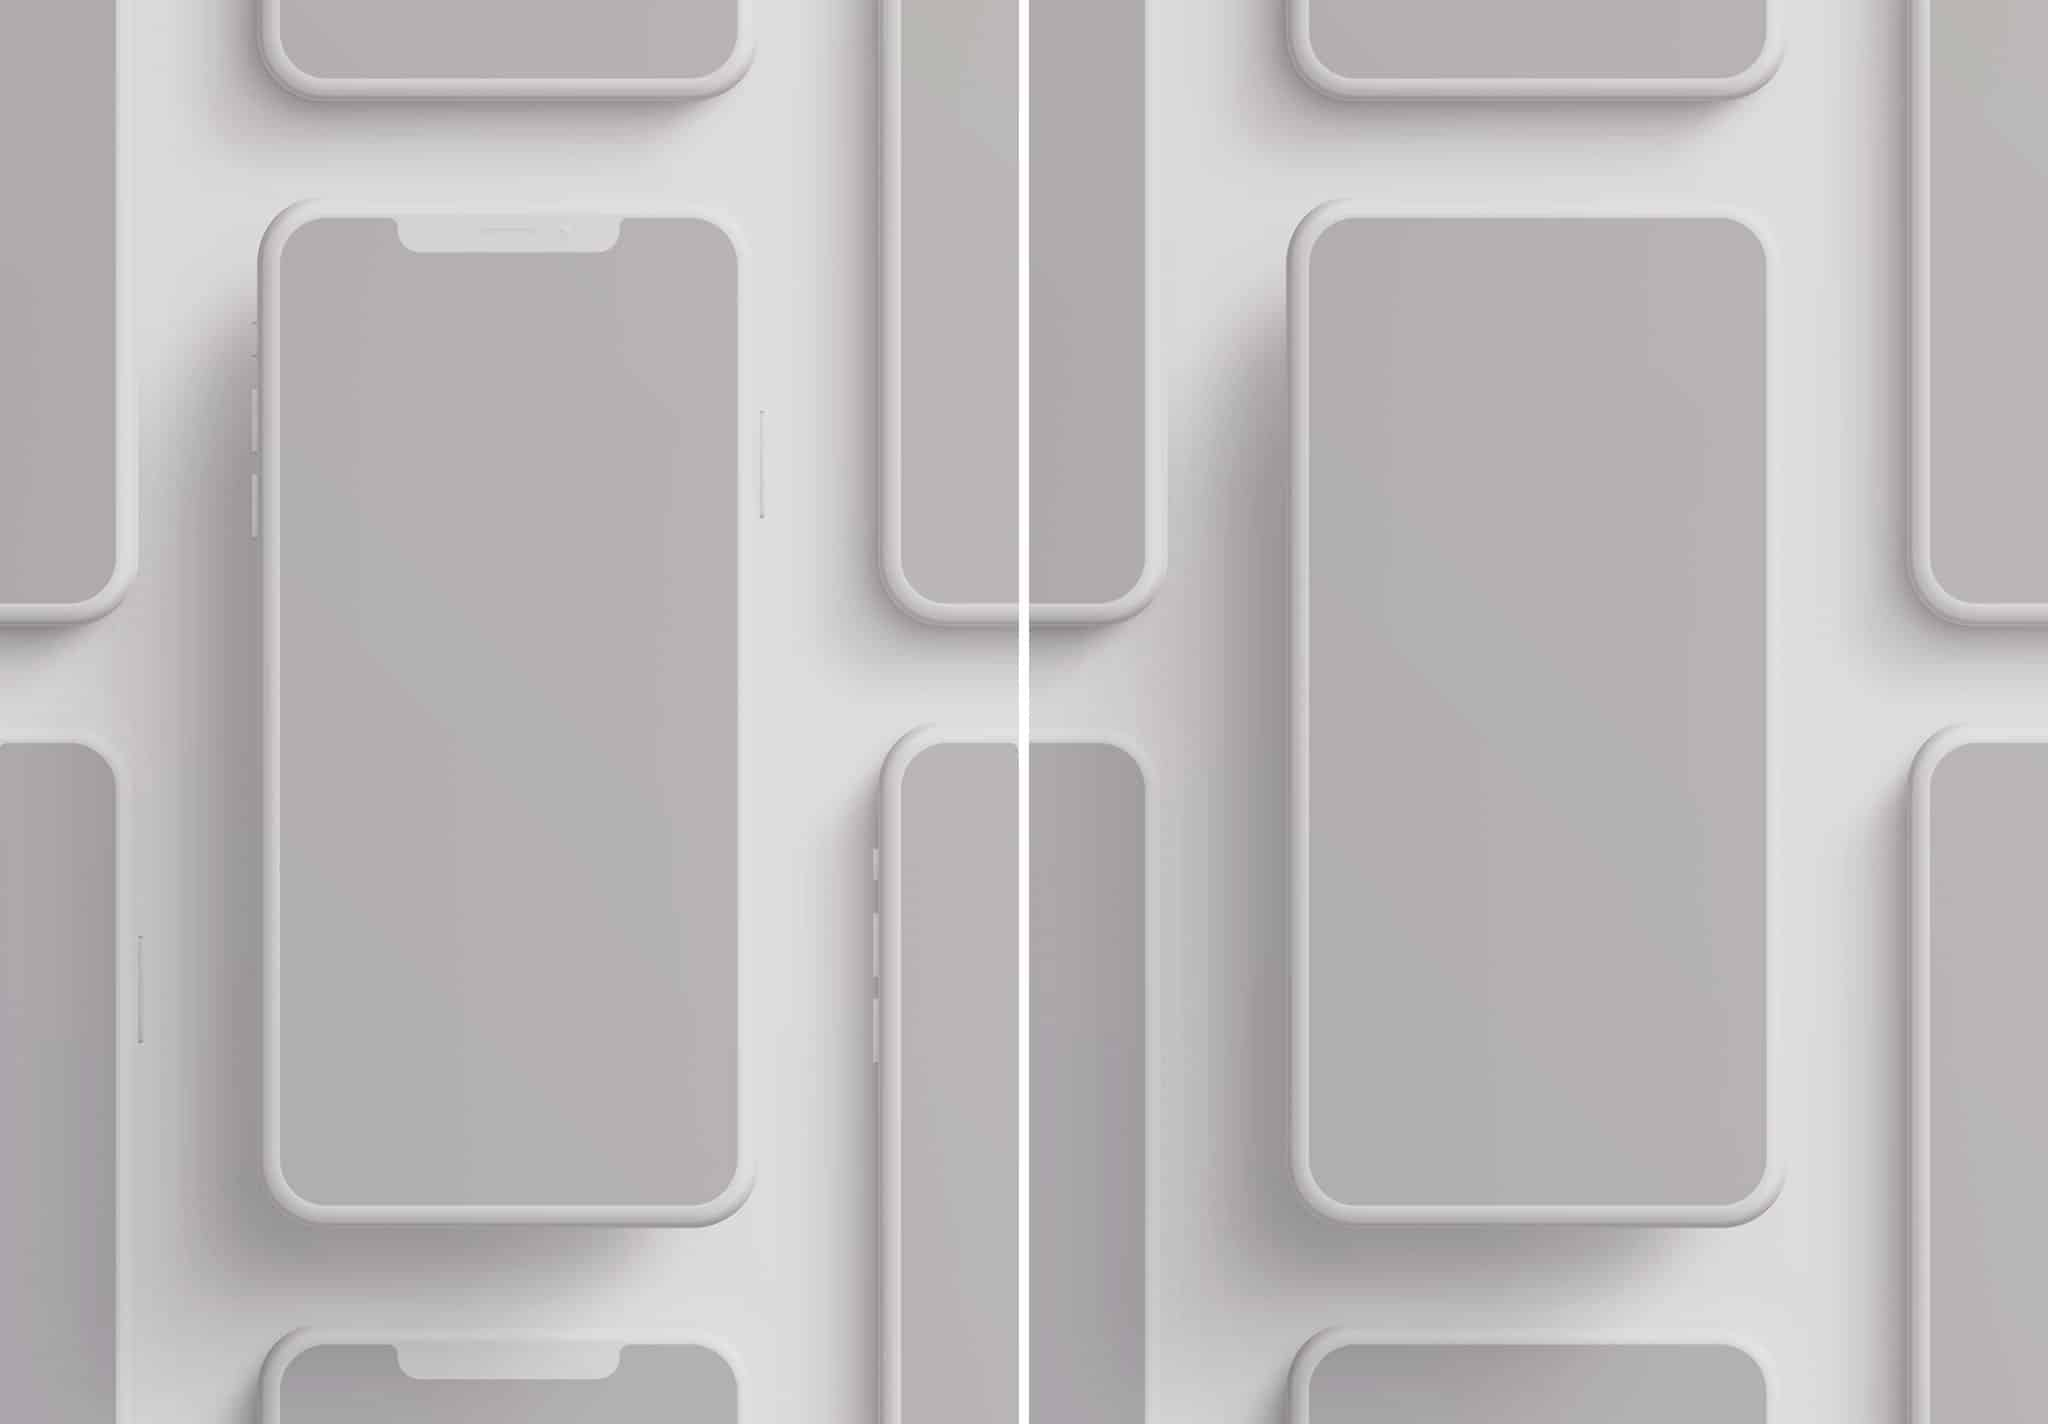 iphone smartphone clay layout 4 mockup image02